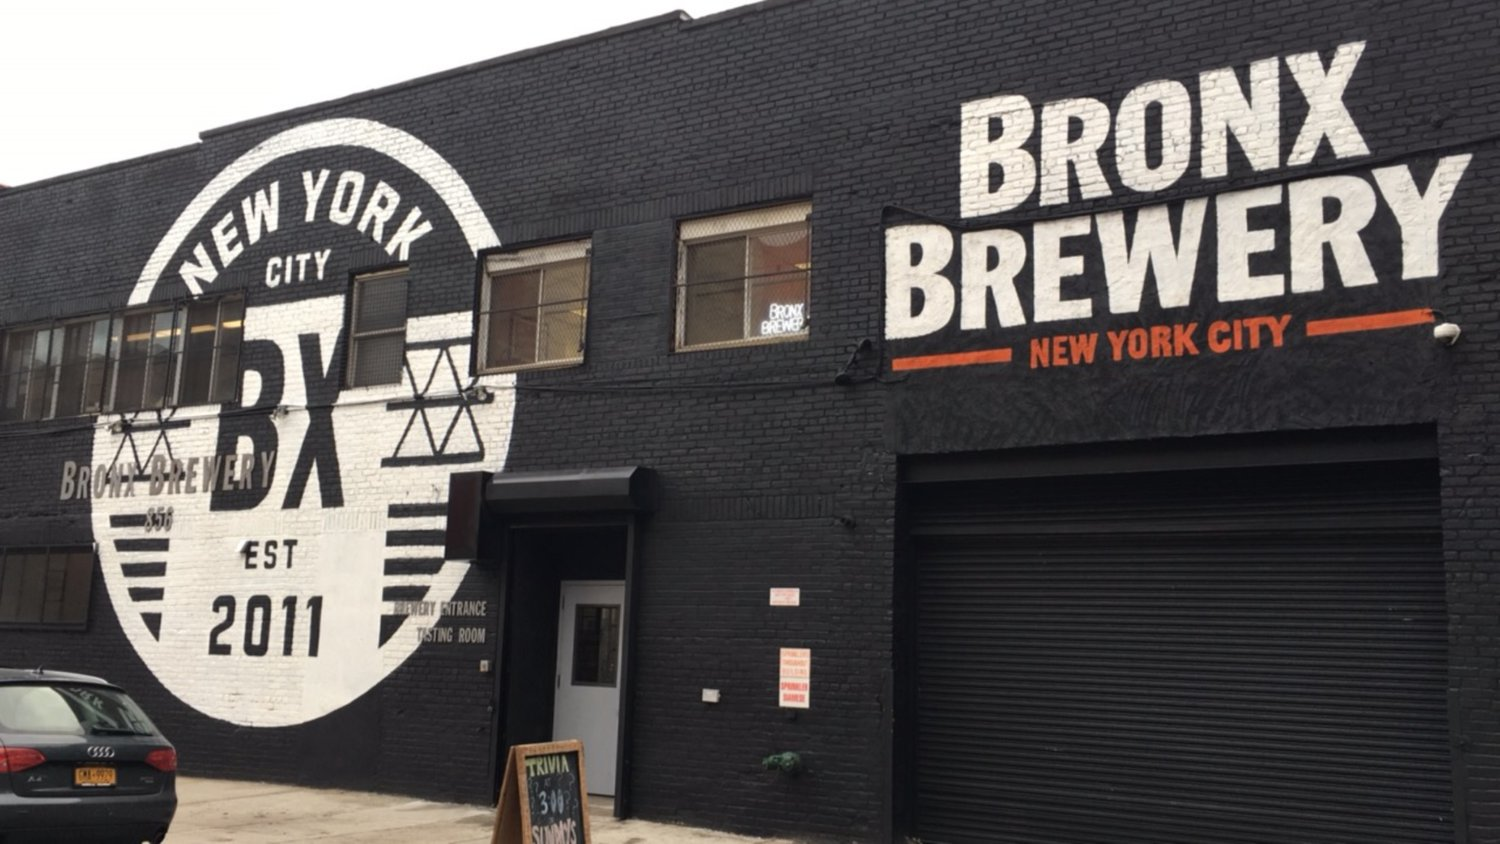 The+Bronx+Brewery.jpg